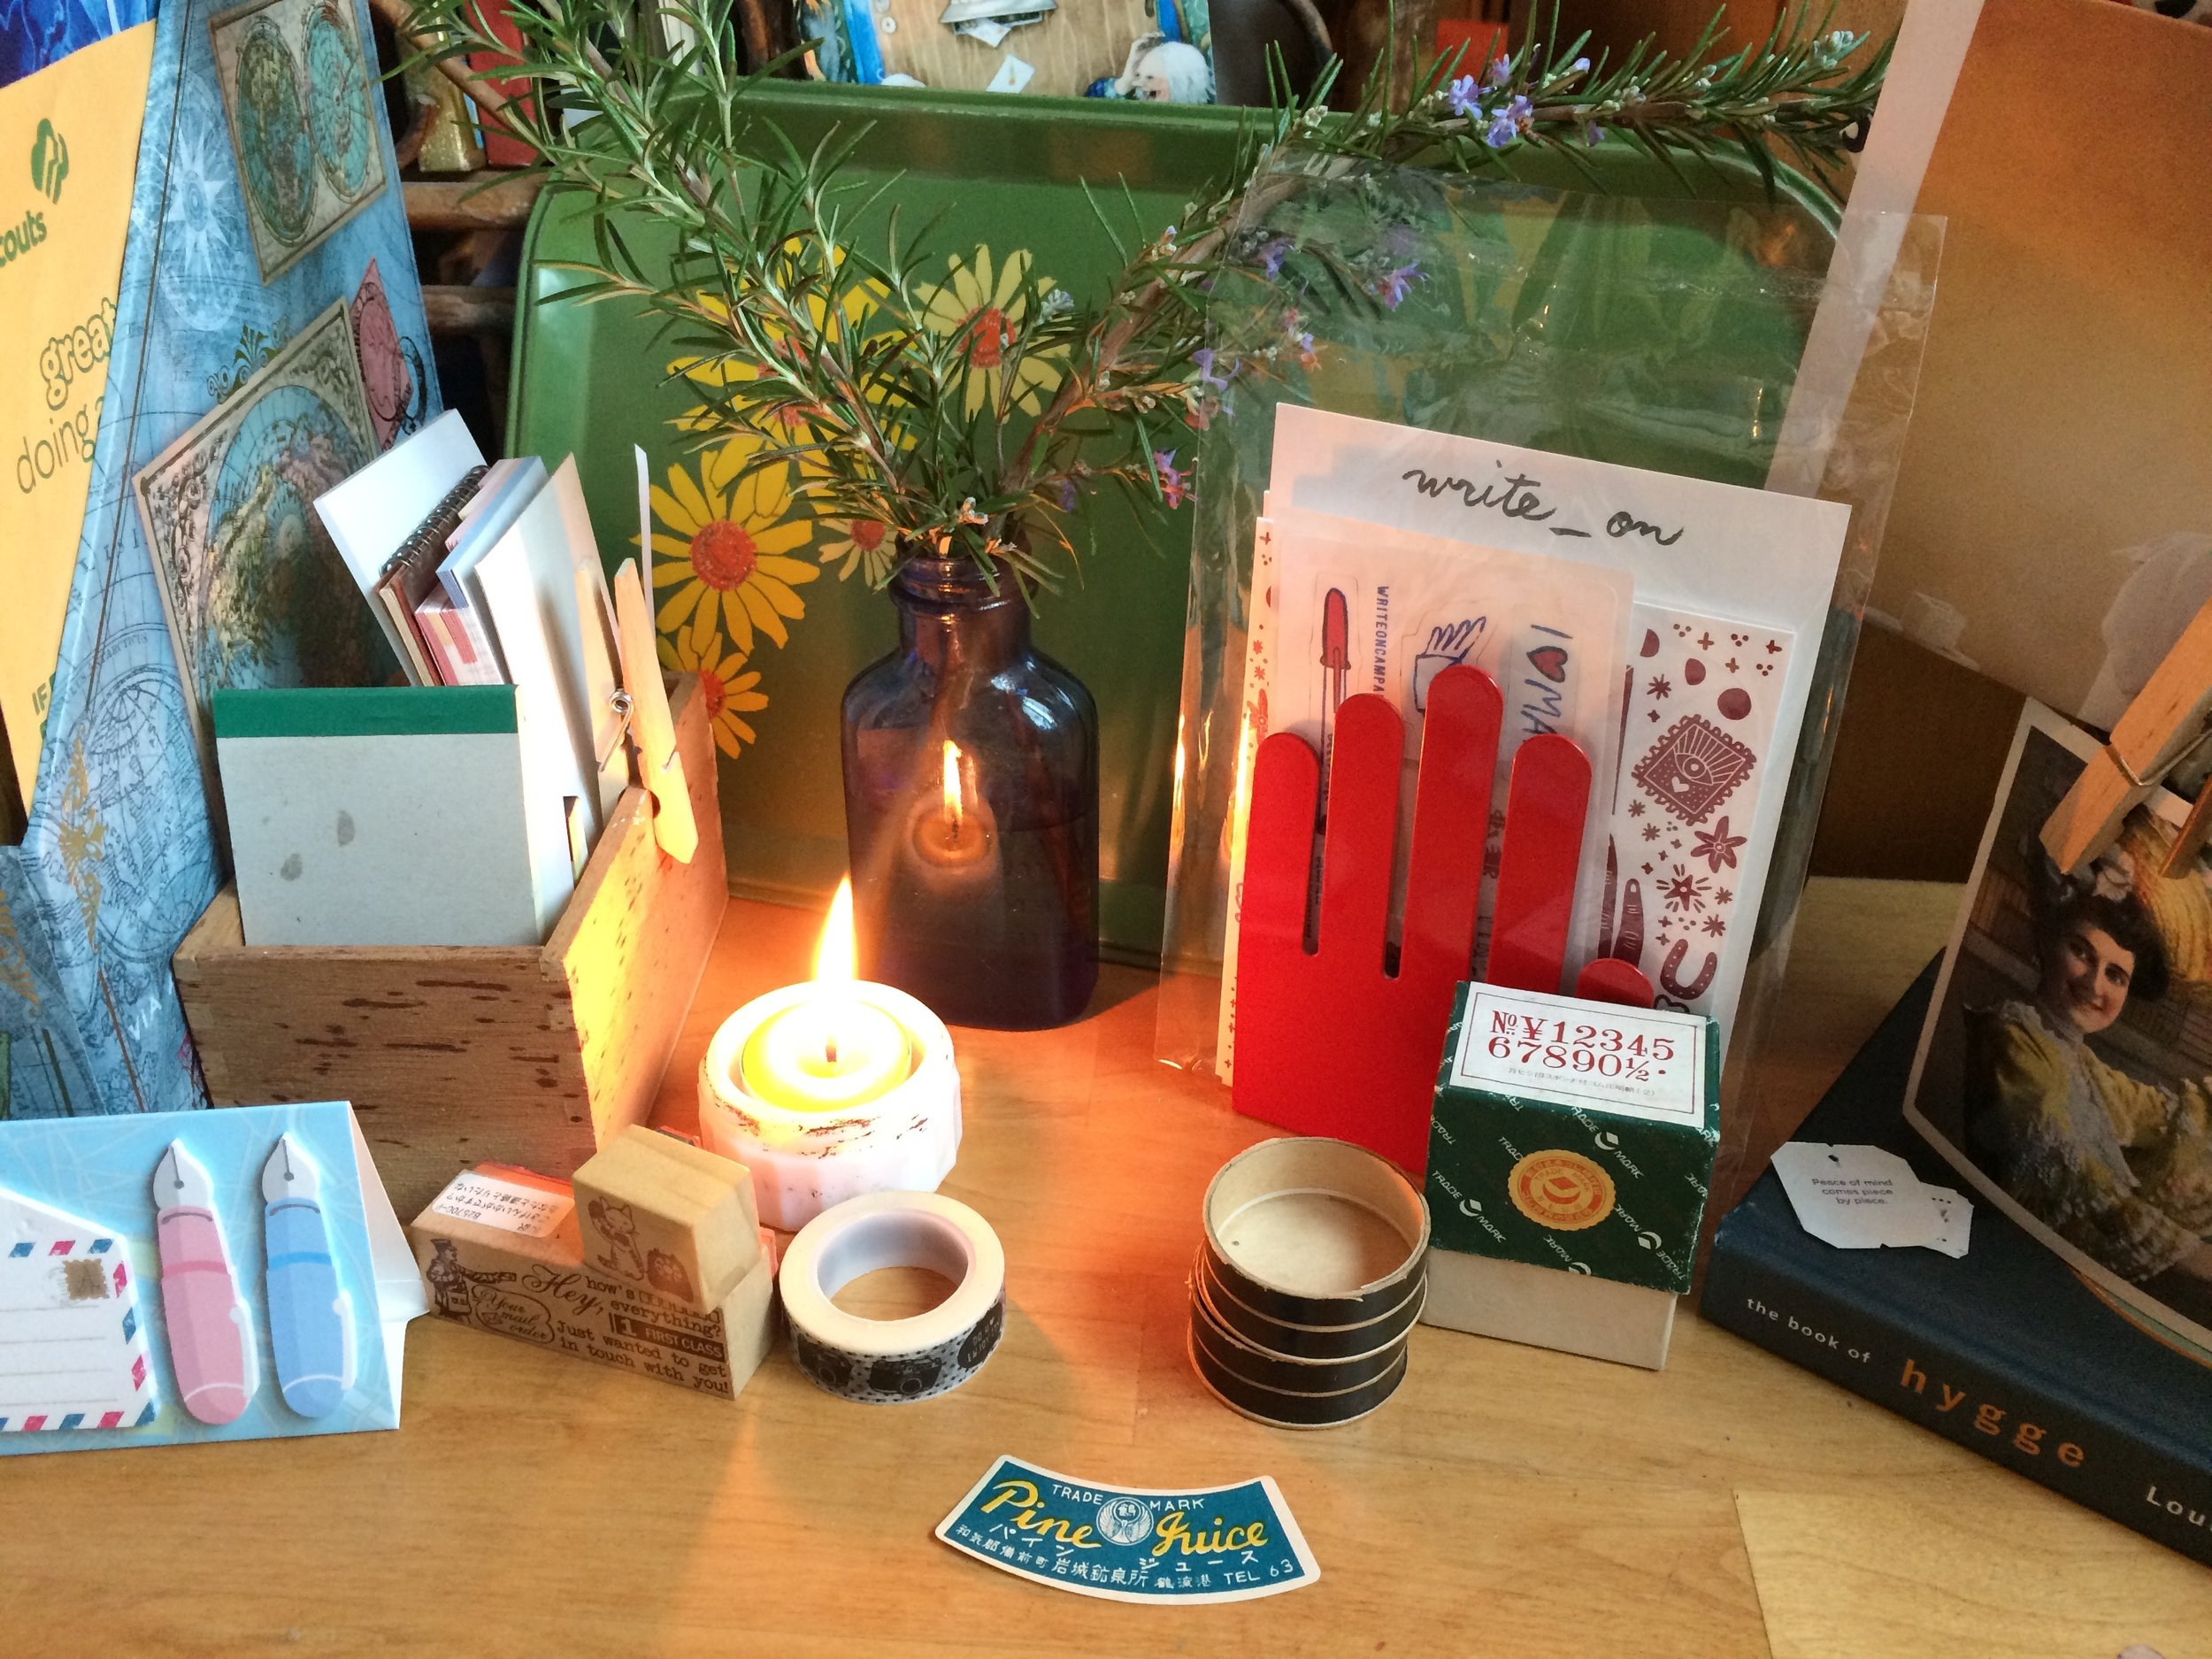 Carving out time to write in our often busy lives can be challenging. Creating a warm and welcoming space to do so can help you make the time!Miss Polly readies her space by lighting a candle and arranging freshly plucked rosemary on her desk.